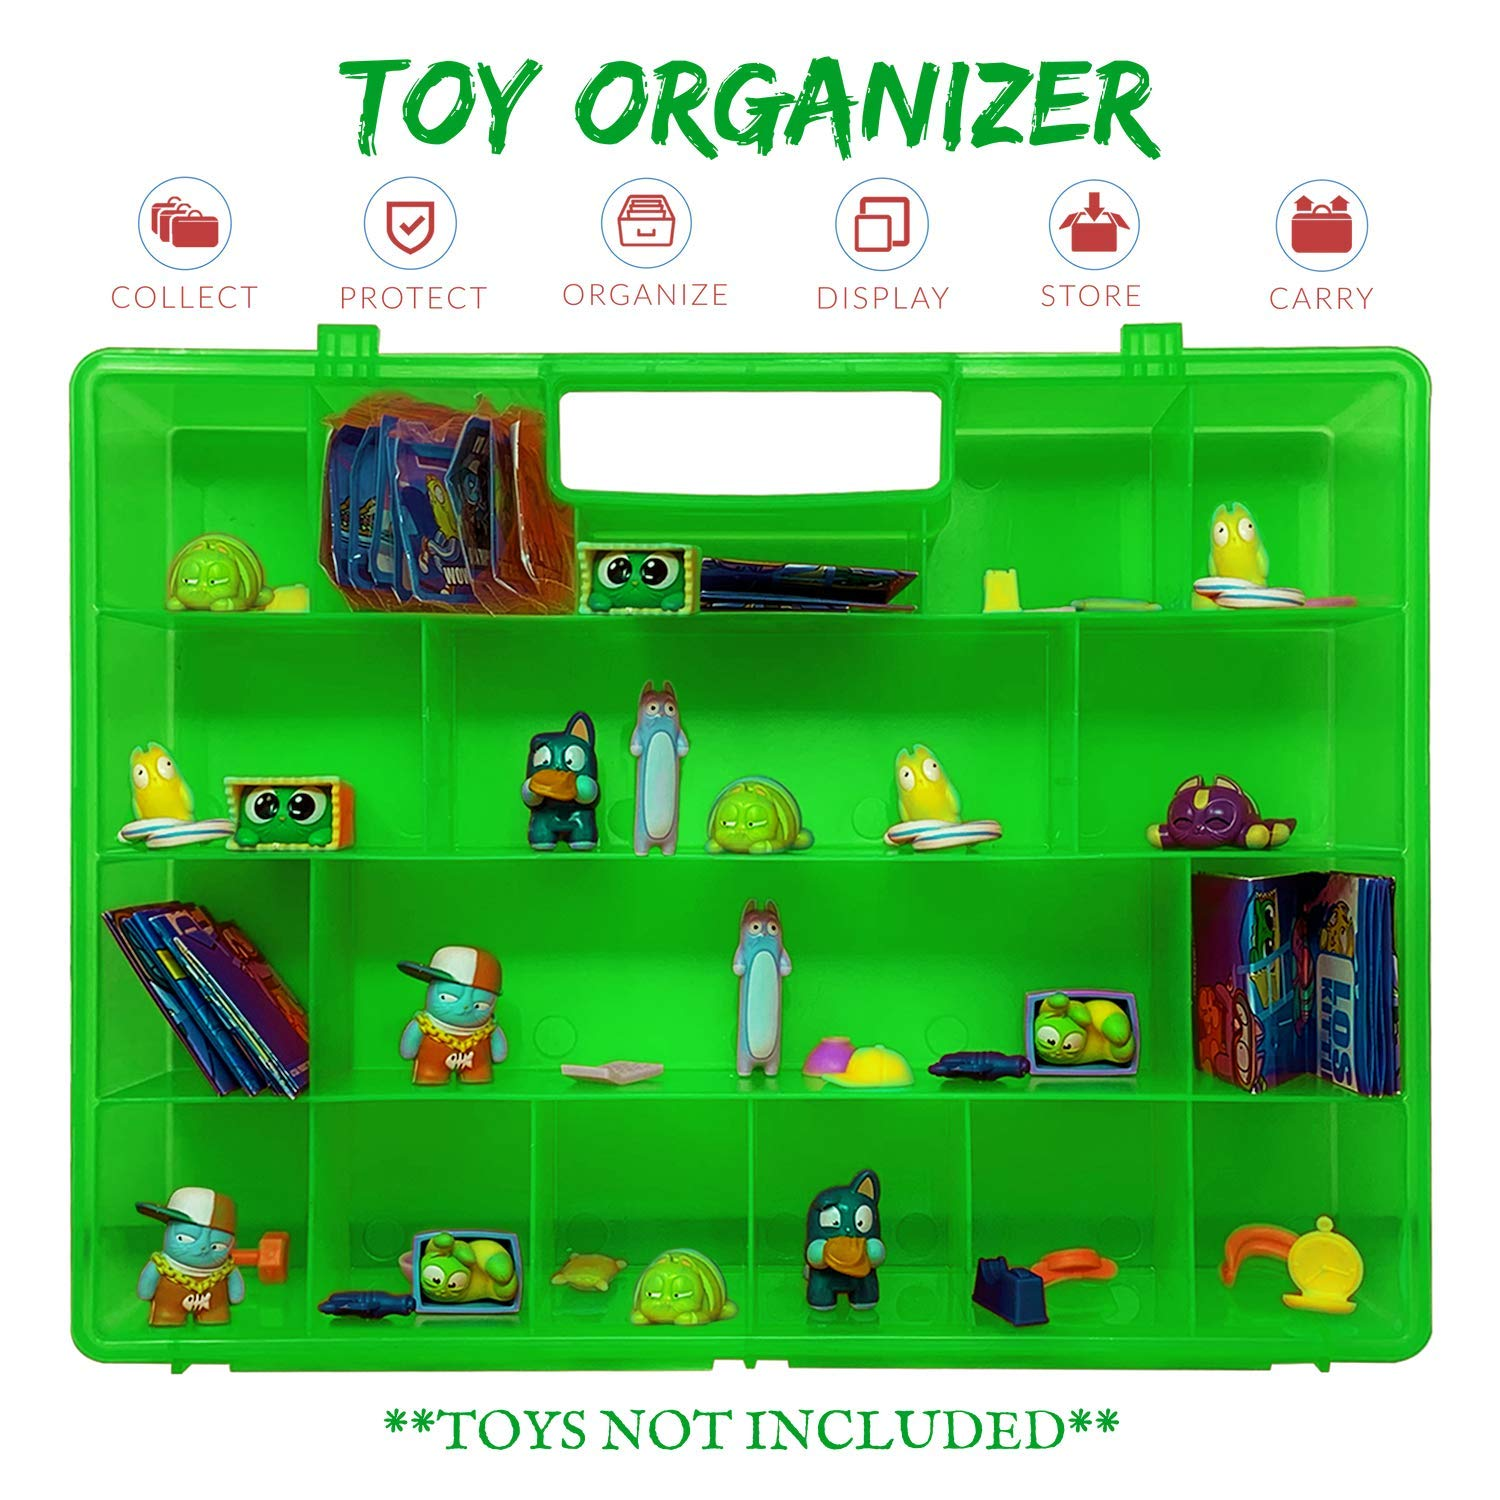 Reinforced with Durability and an Easy to Use Molded Kid Friendly Handle Life Made Better 2.0 Toy Storage Organizer Not Made by Lost Kitties Toy Storage Case Compatible with Lost Kitties